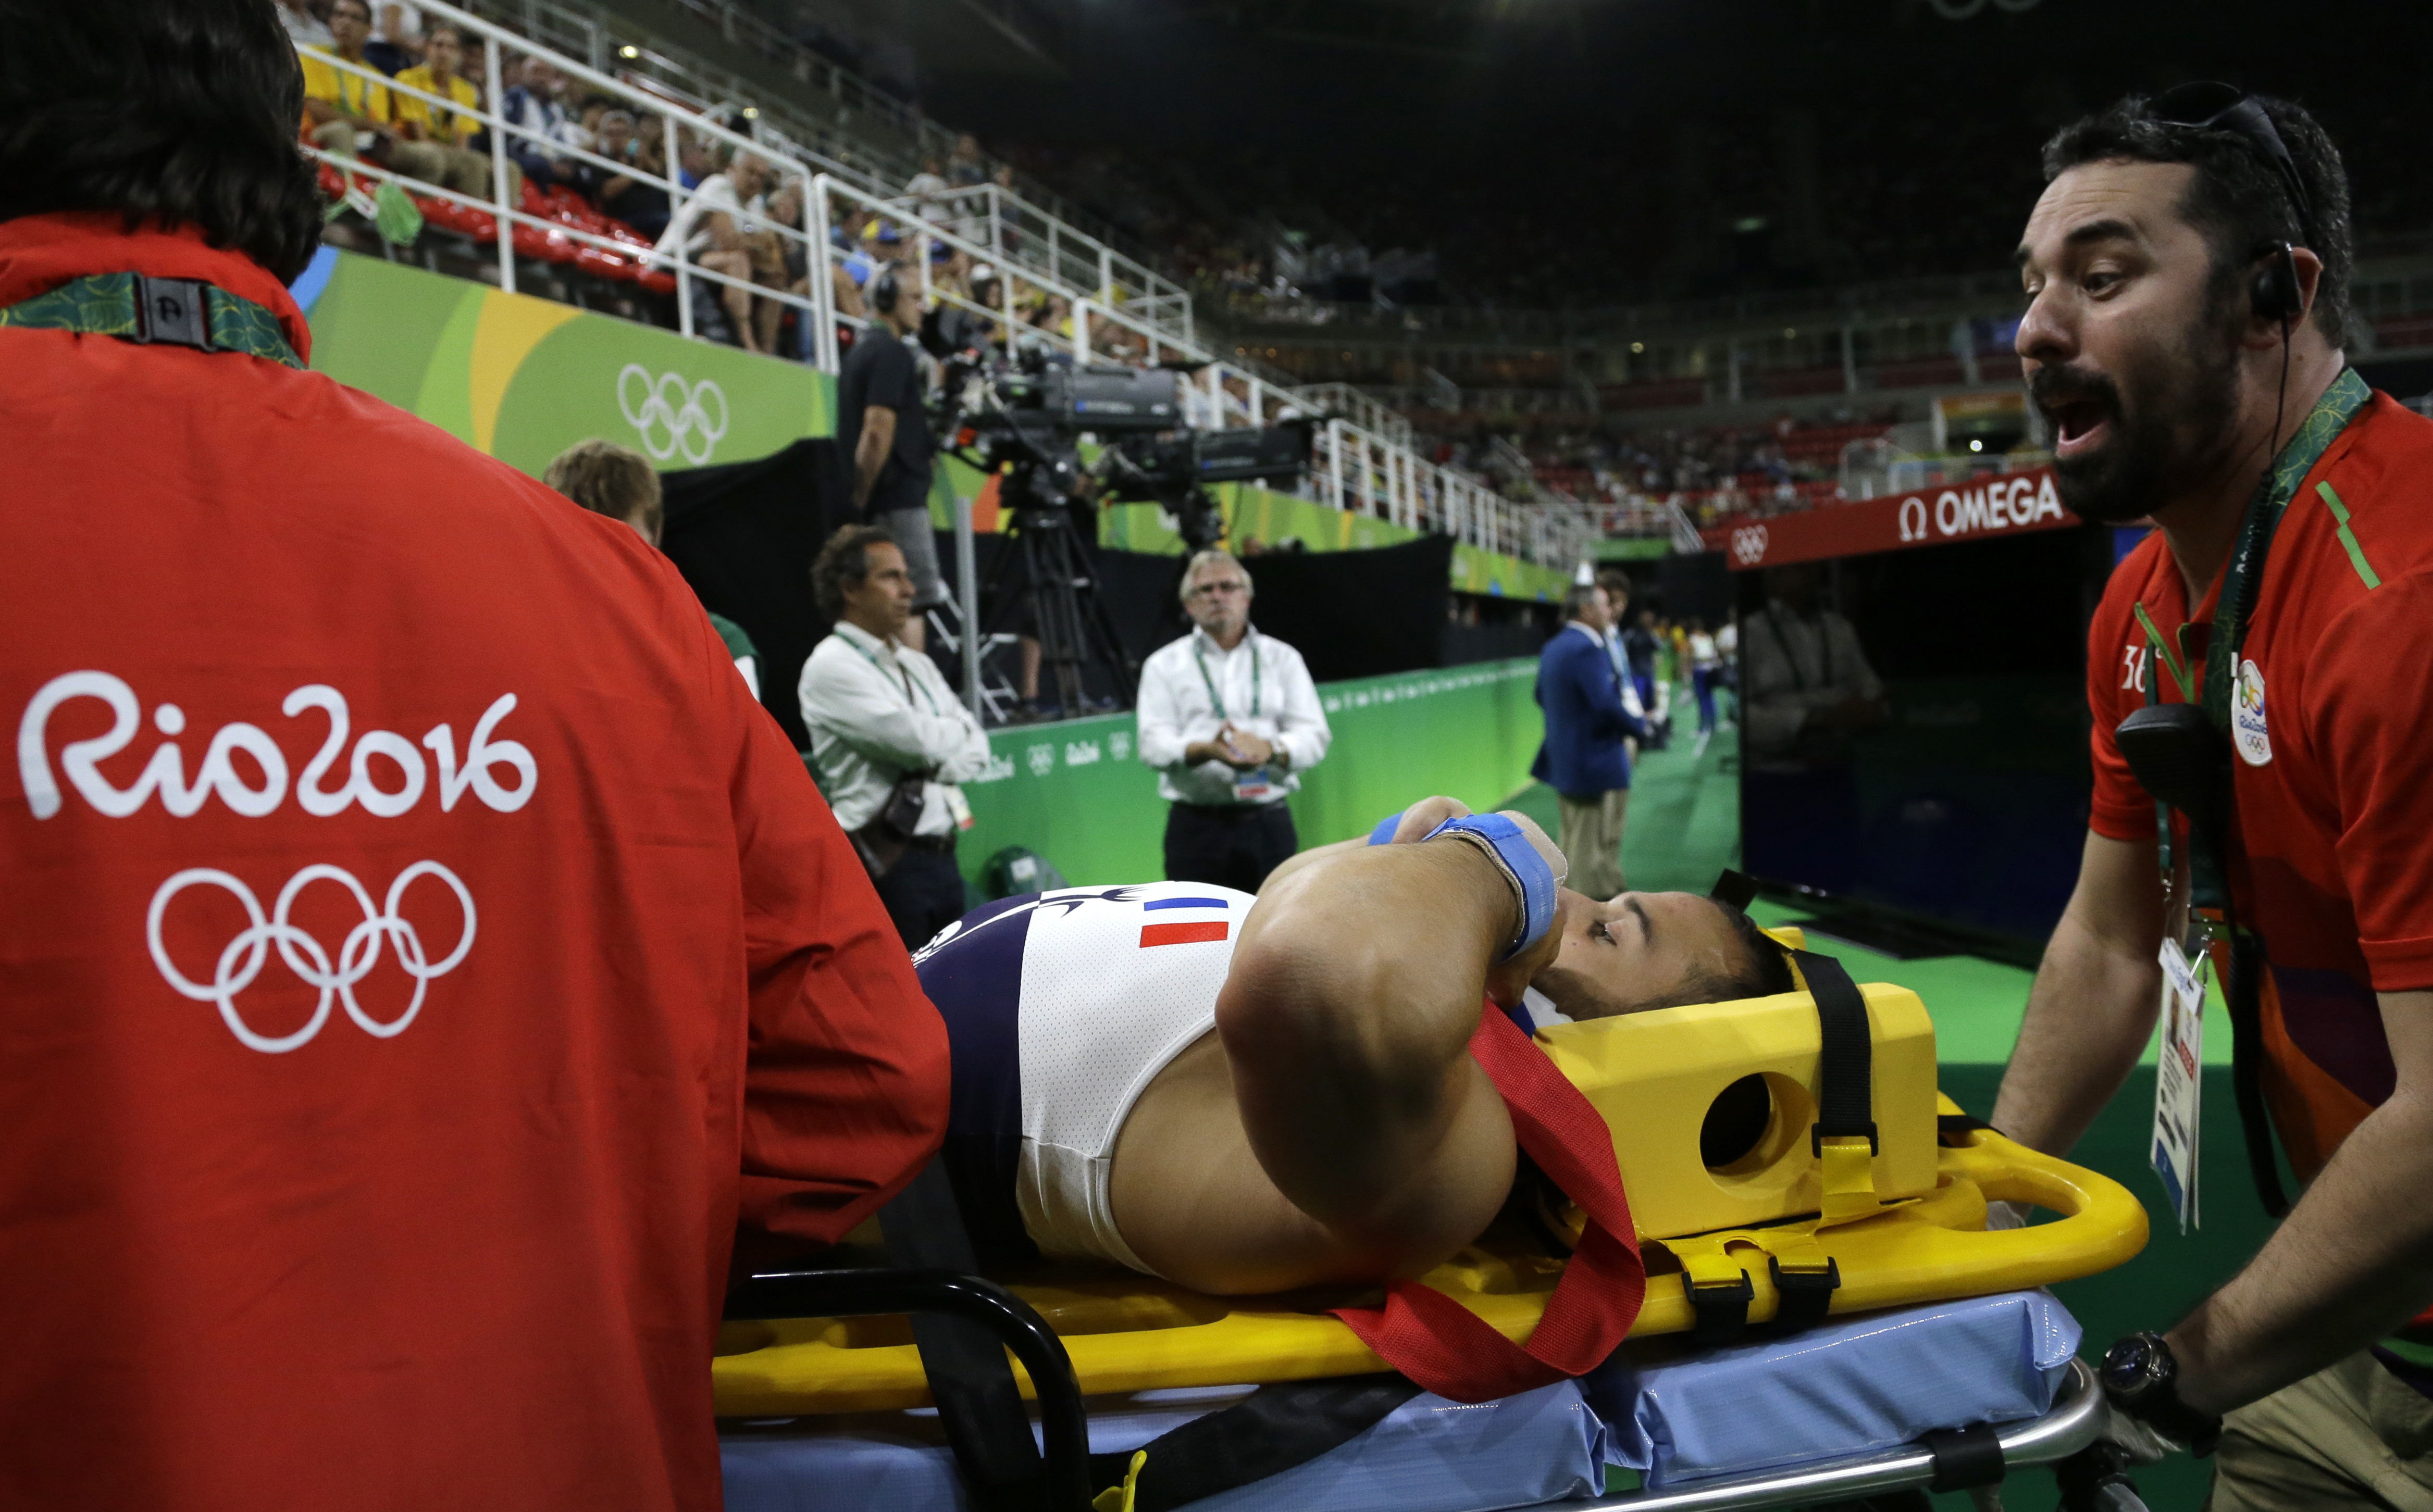 Rio 2016: Frenchman, Ait Said suffers horror break in qualifying